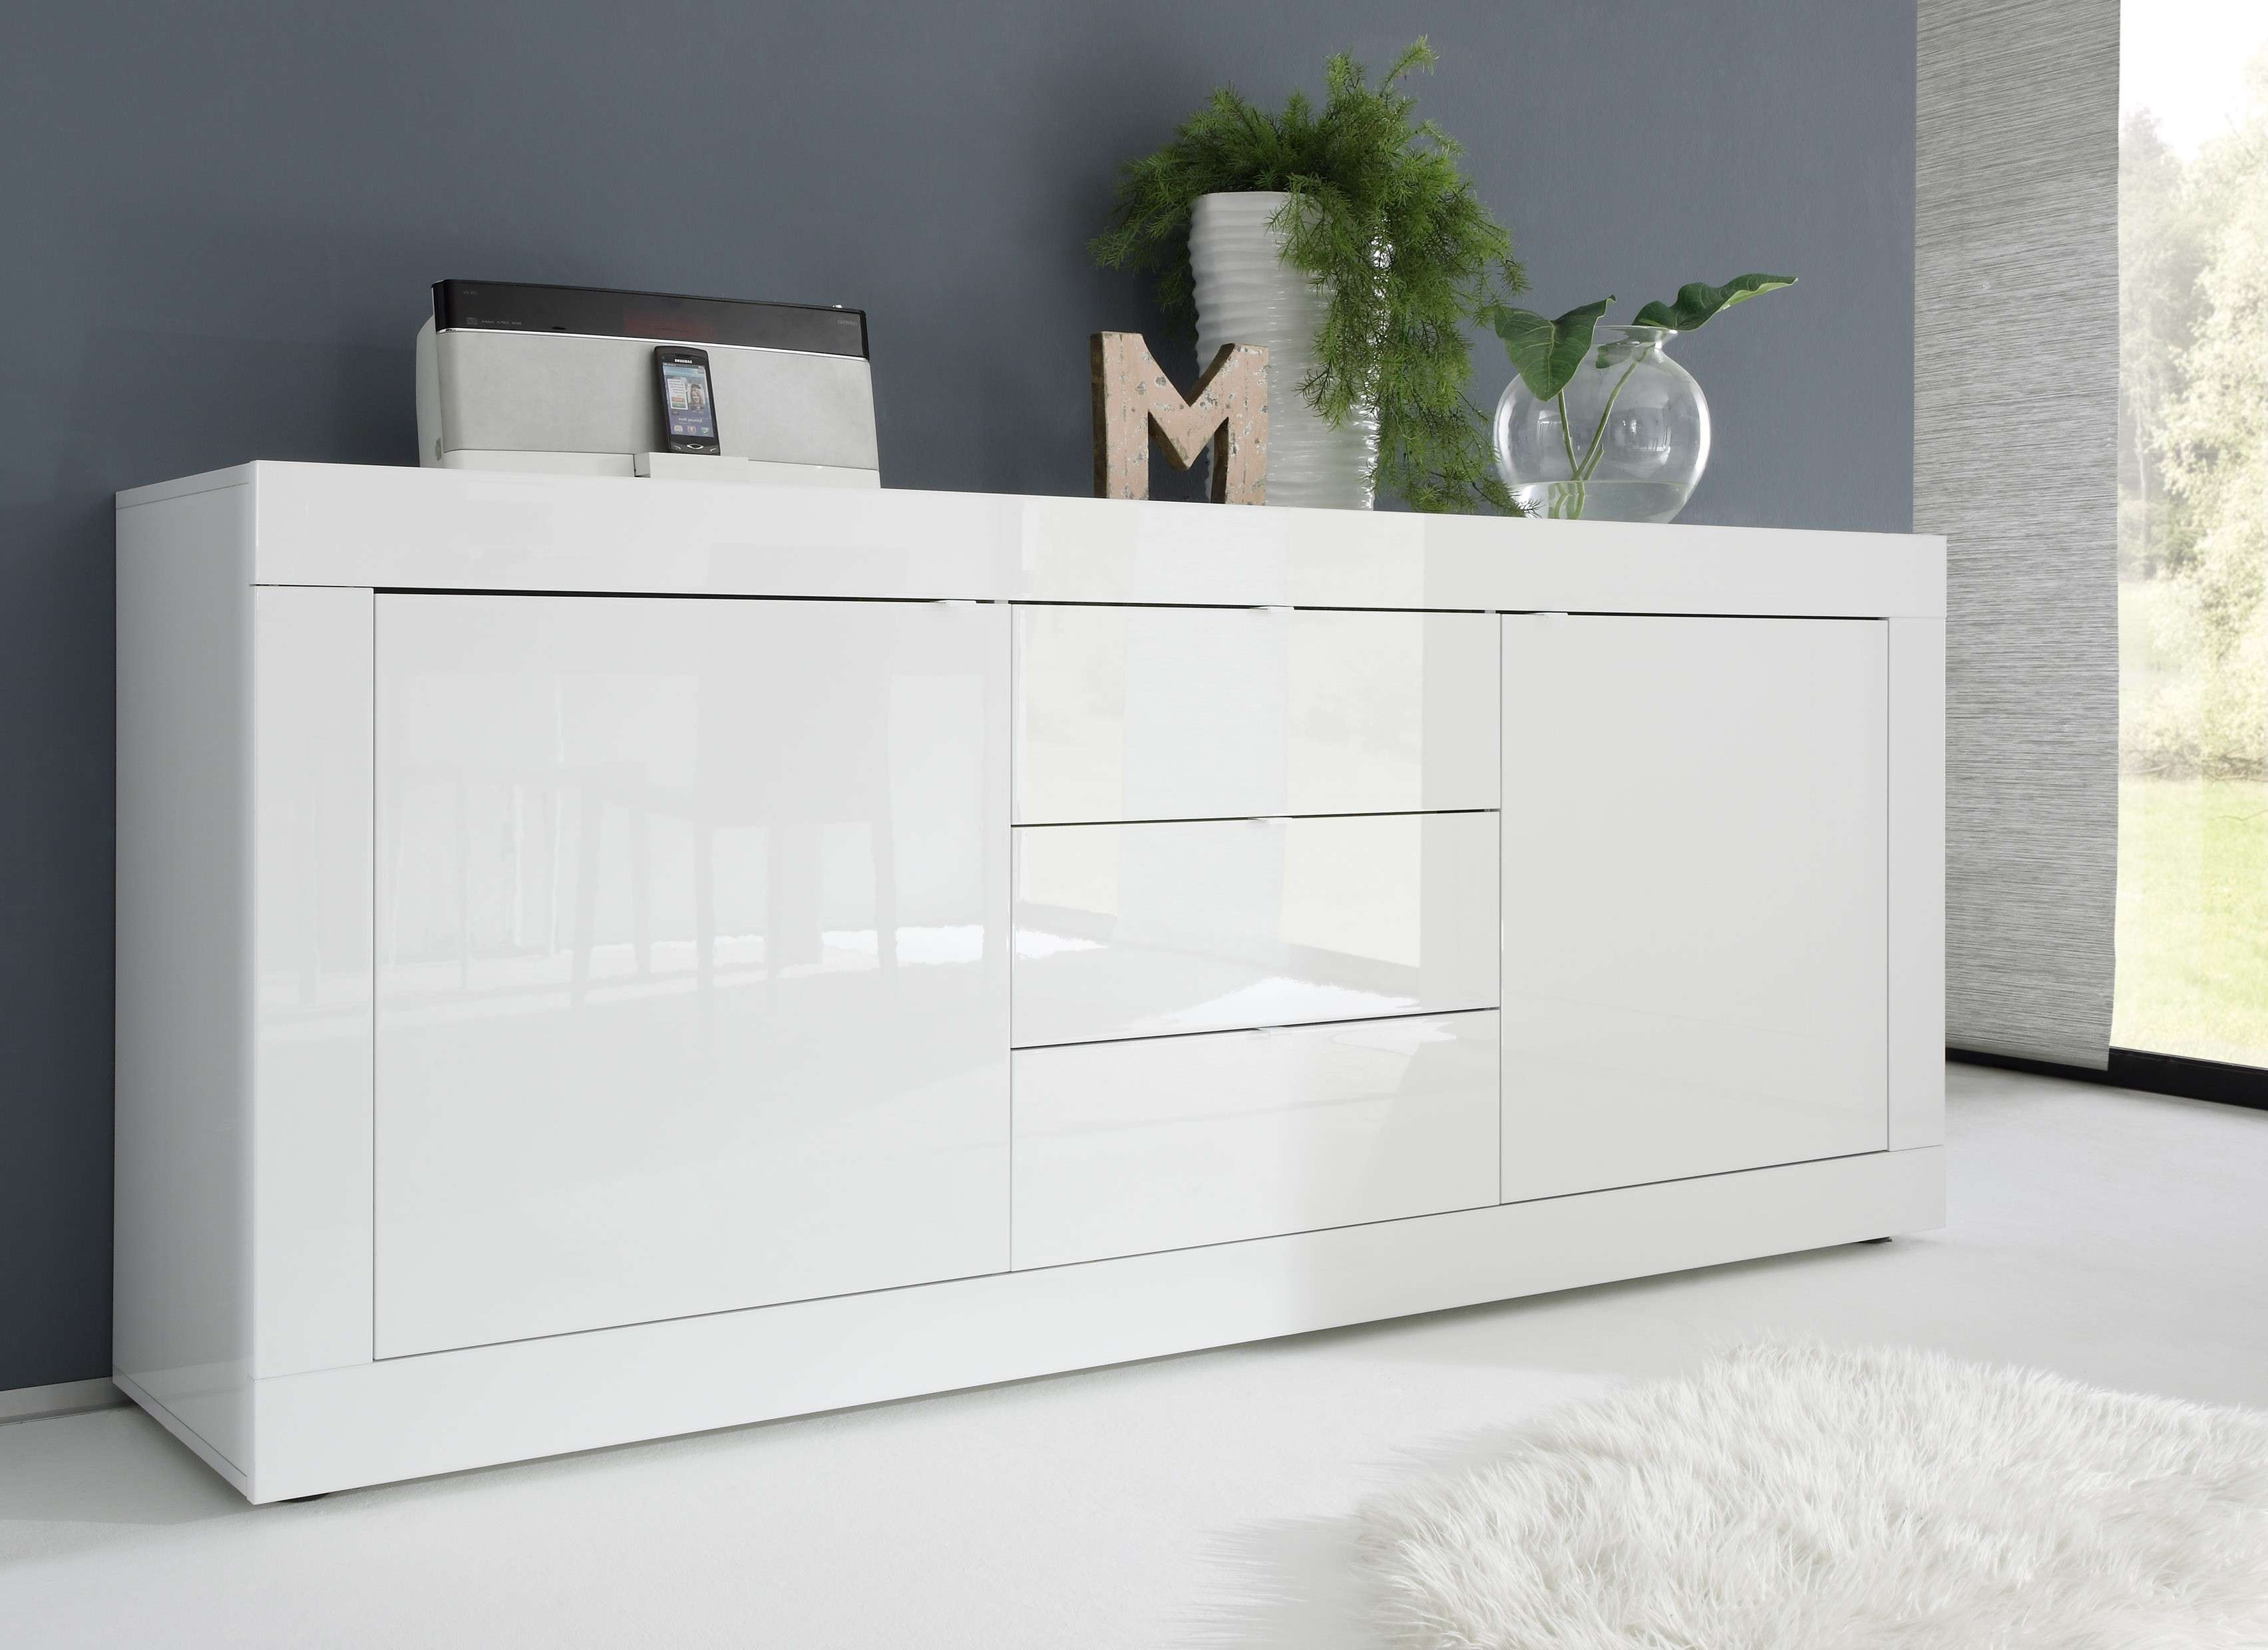 Best Of White Buffet Sideboard – Bjdgjy Throughout White Buffet Sideboards (View 5 of 20)